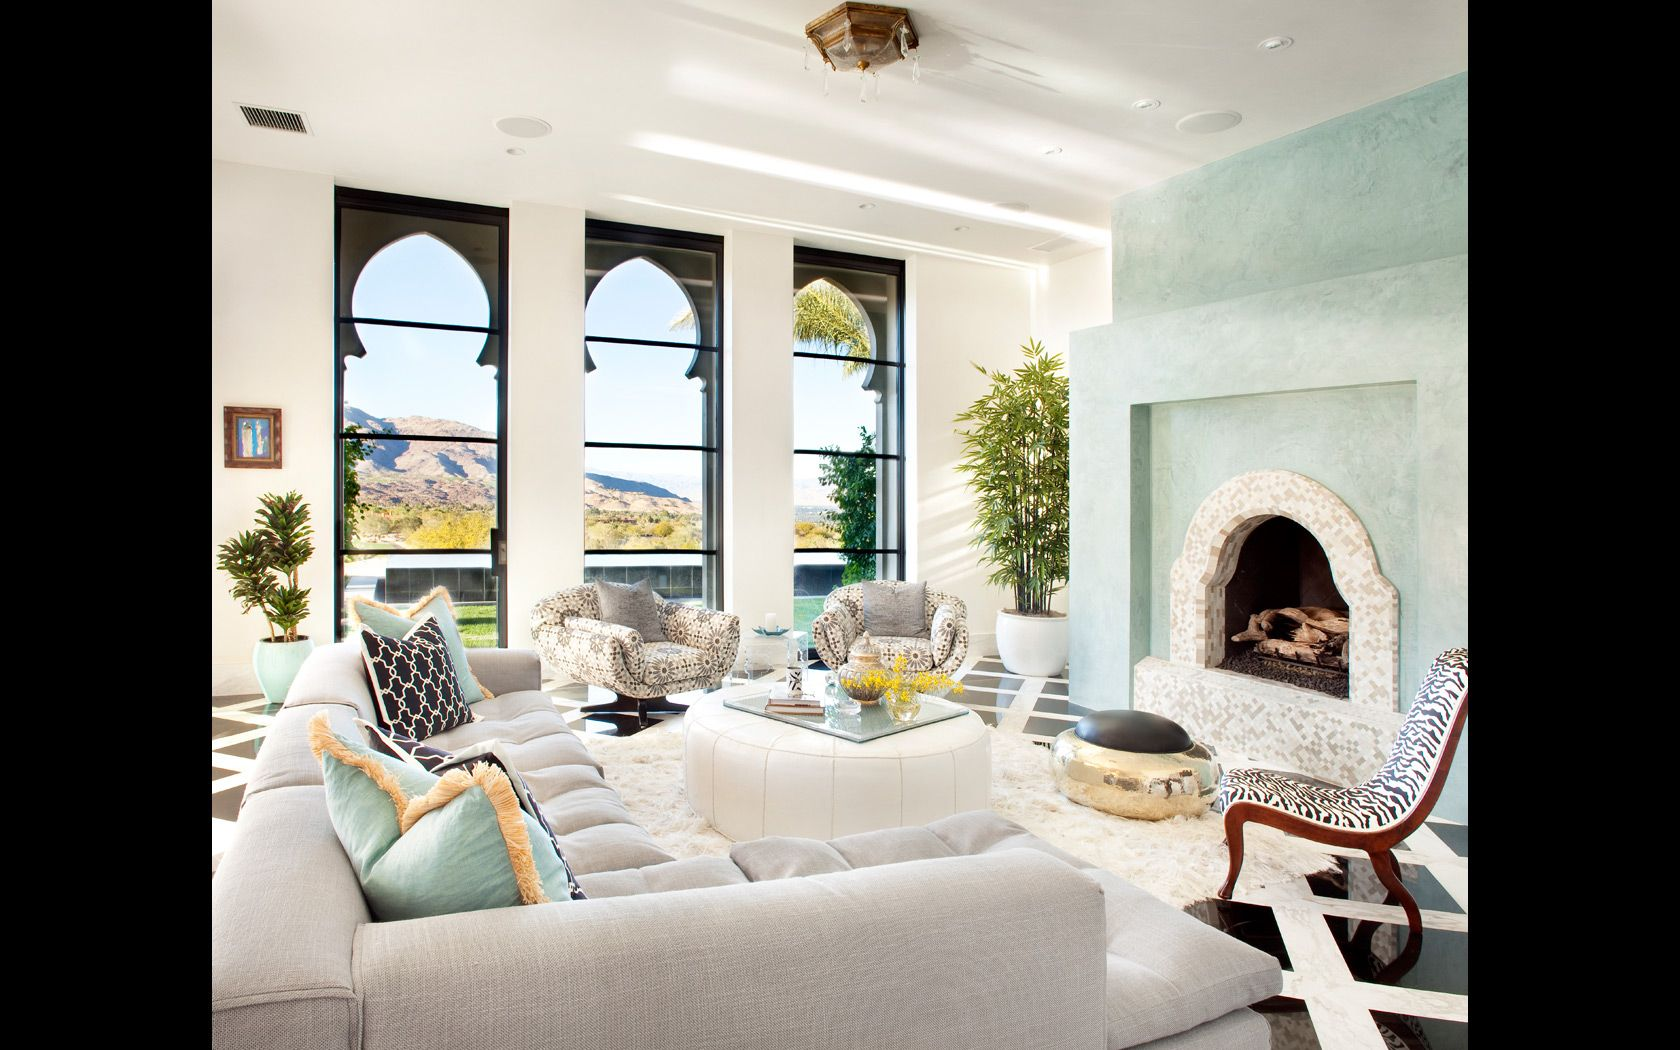 Casbah Cove - Premier Palm Desert Luxury Property | Dreams of Design ...